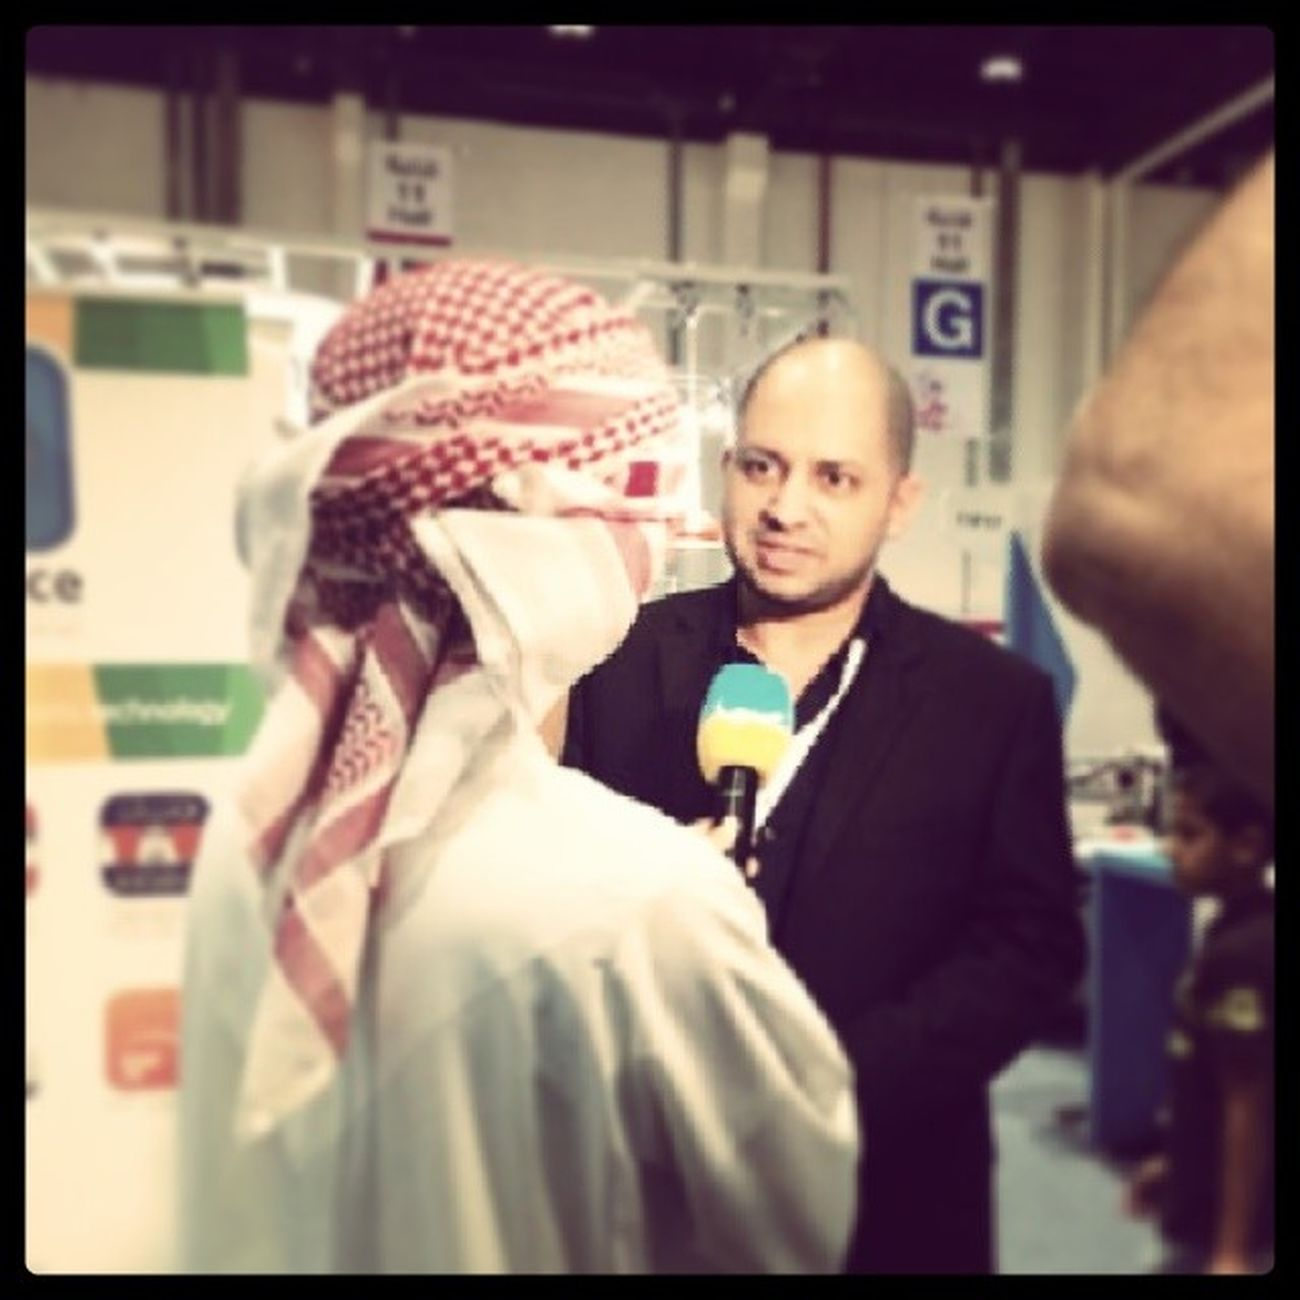 Interview with Sama_Dubai in ADIBF2014 taking about Interface_jlt mobile apps